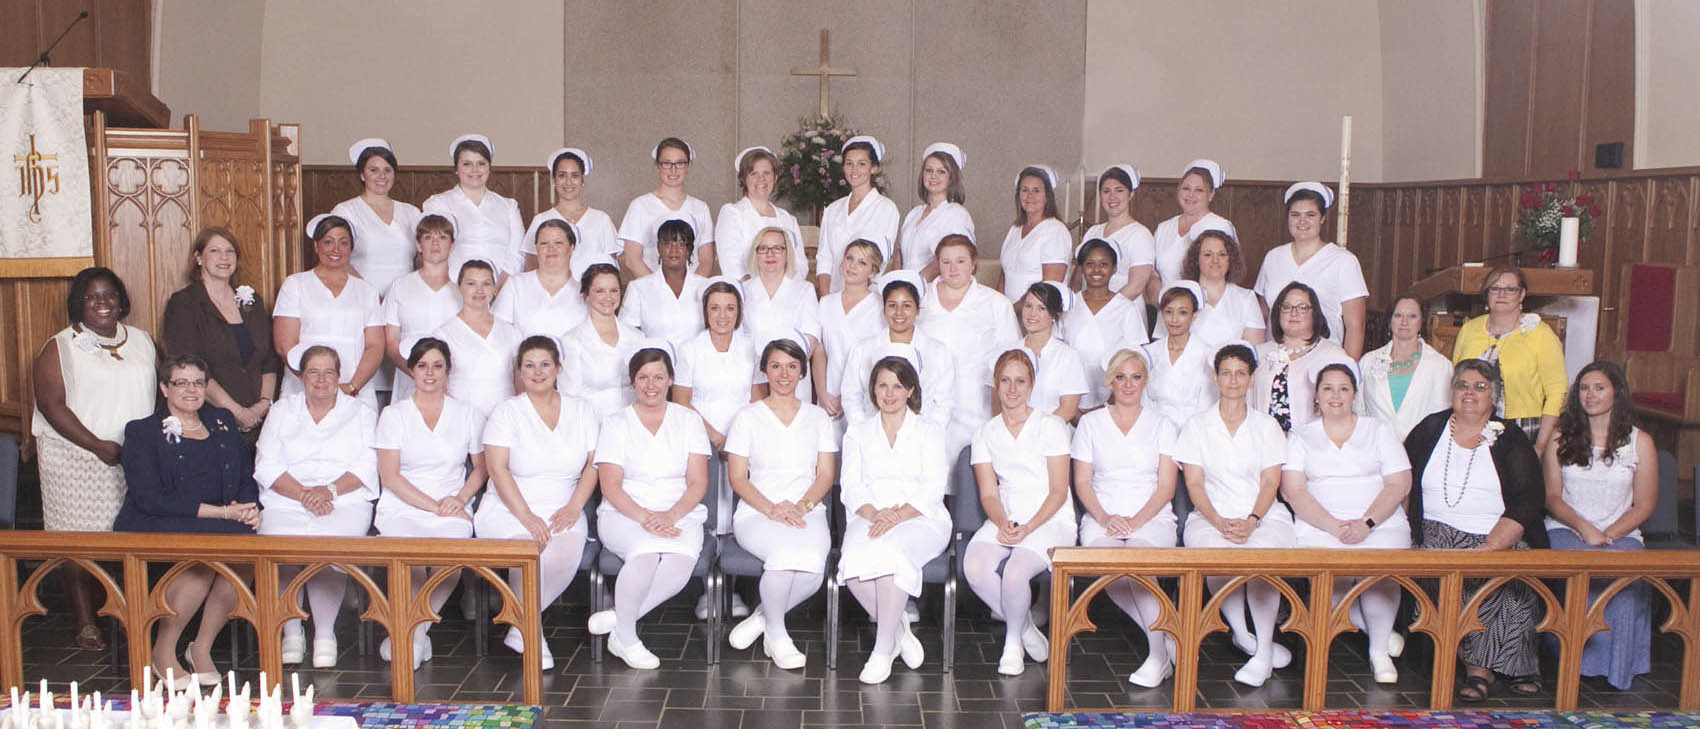 Click to enlarge,  Central Carolina Community College held a Pinning and Candlelighting Ceremony for its 2016 Associate Degree Nursing graduates on Thursday, May 12, at St. Luke United Methodist Church.